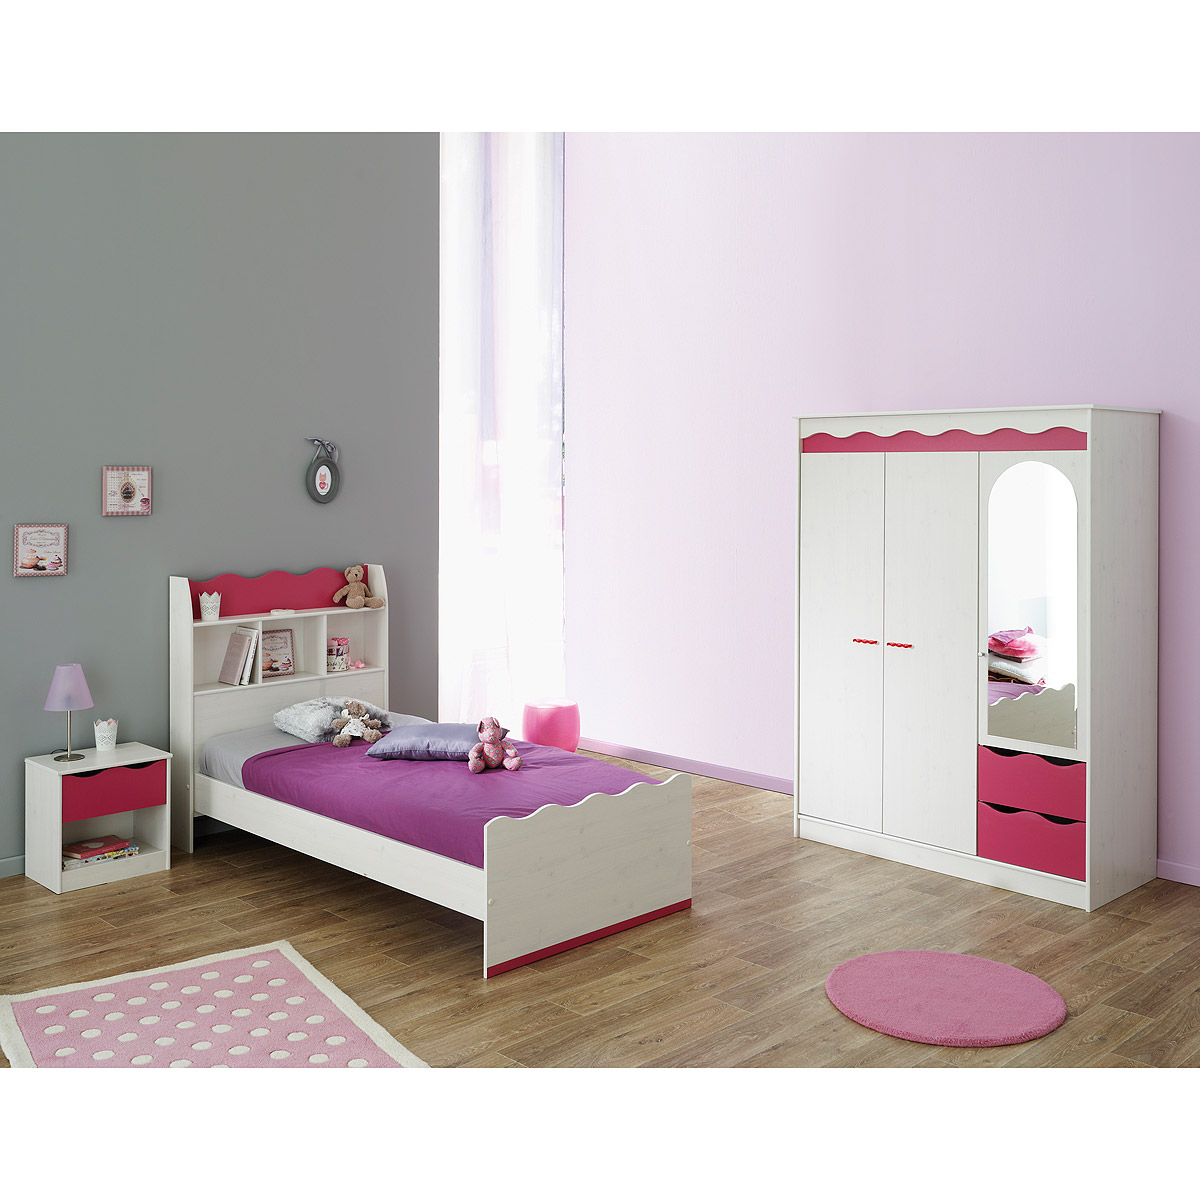 kinderzimmer lilou kinderzimmerset schrank bett nako in. Black Bedroom Furniture Sets. Home Design Ideas